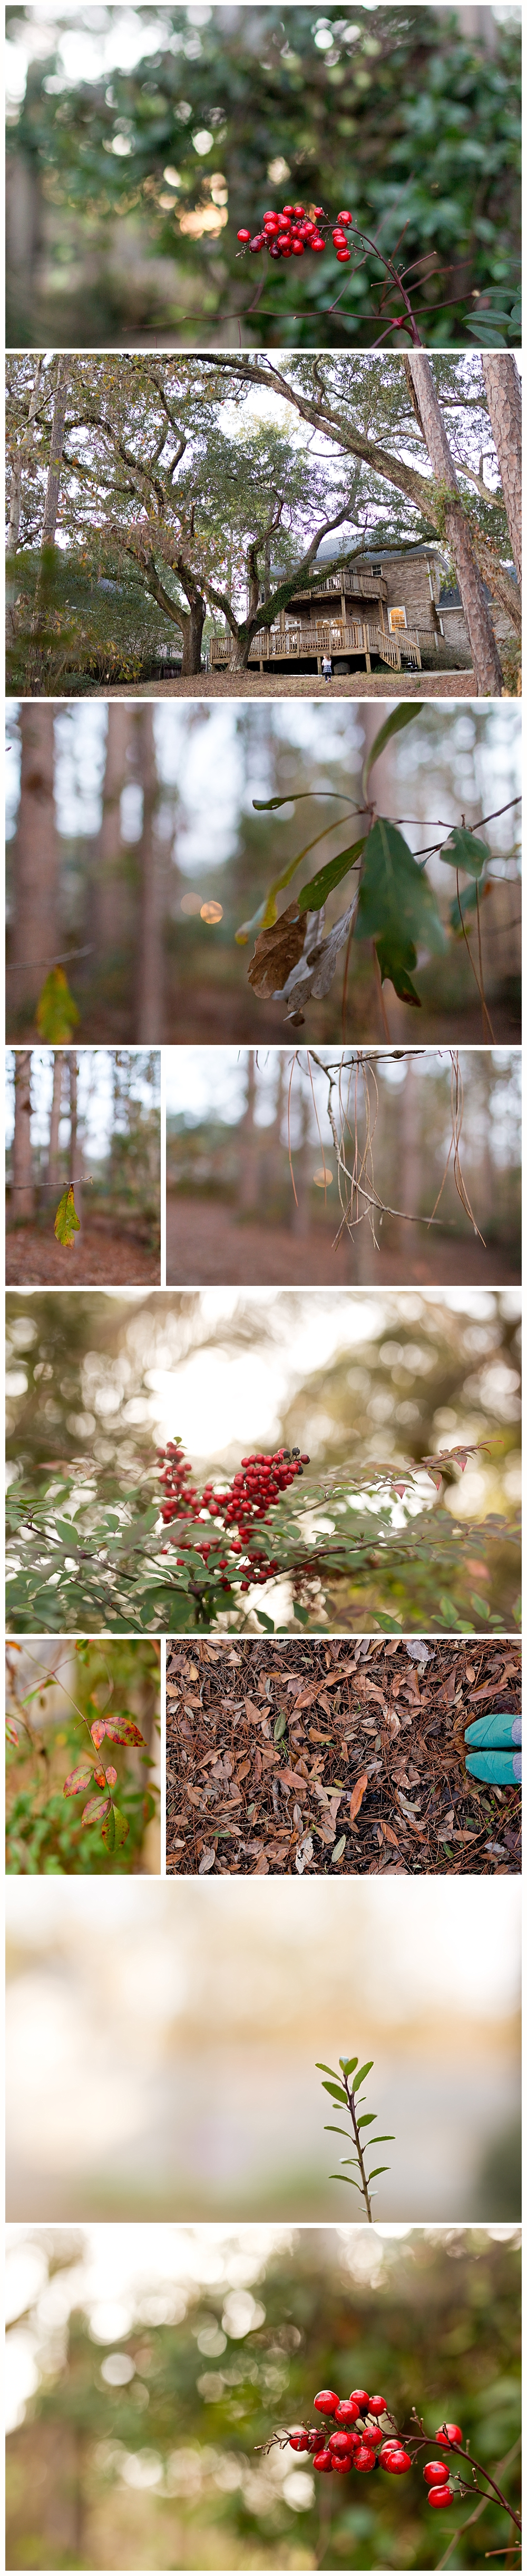 Ocean Springs, Mississippi nature photography - back yard in Bienville Place